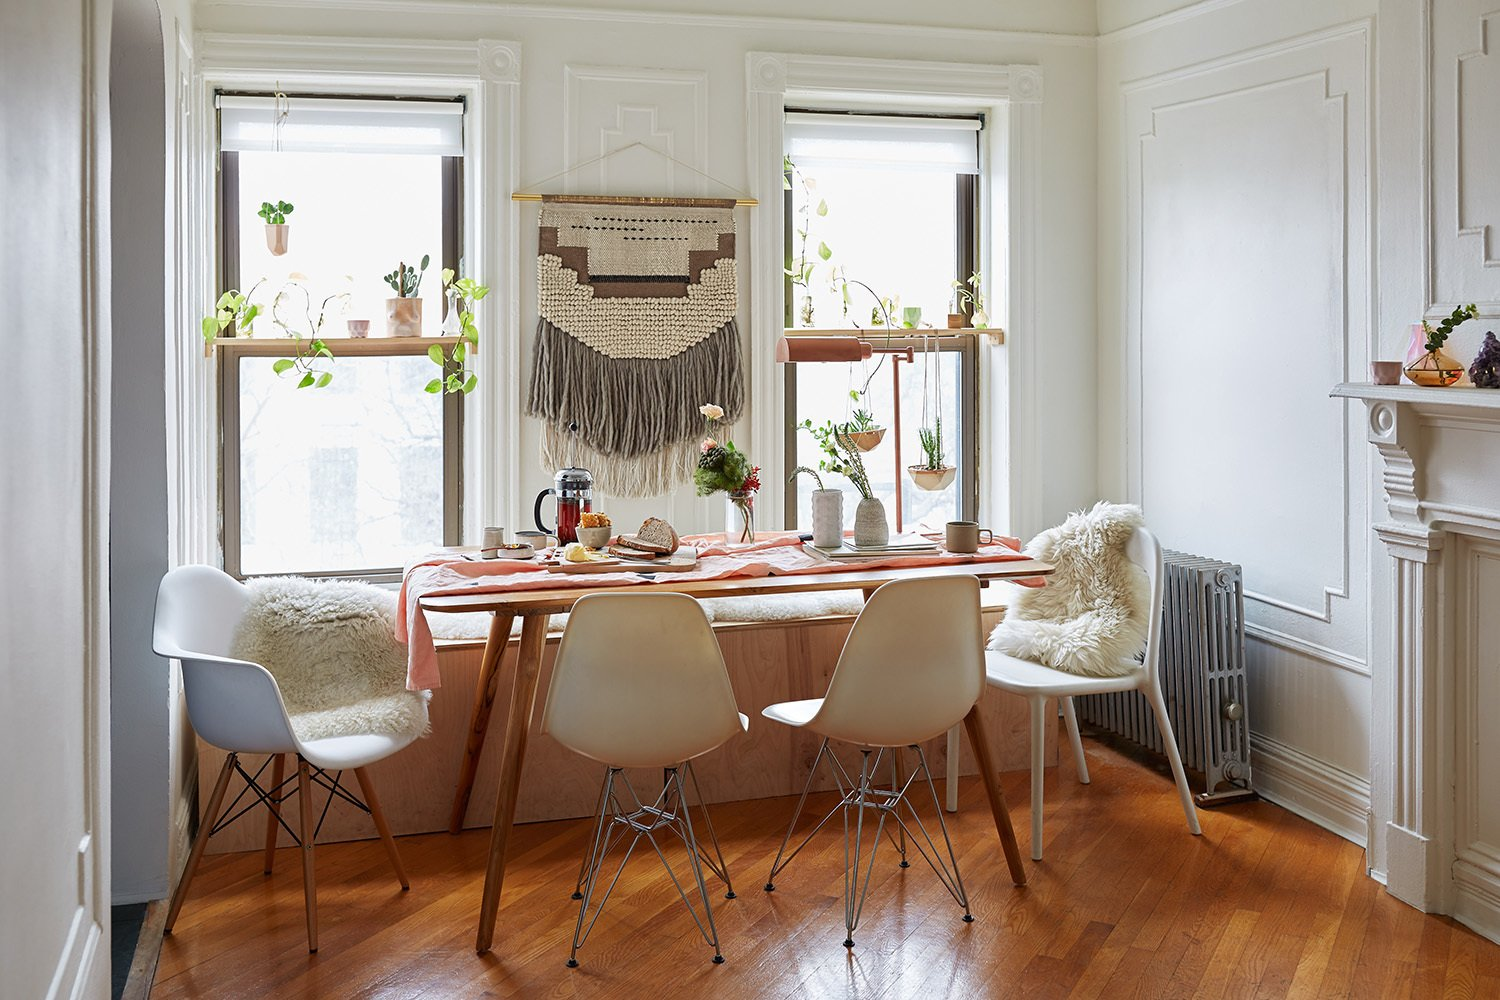 The couple's changes to the space were mostly decorative. They built the custom bench in the dining area, which holds a litter box for their cat on one end and storage space on the other. The table was purchased at The Source in Brooklyn and the wall hanging is from CB2.